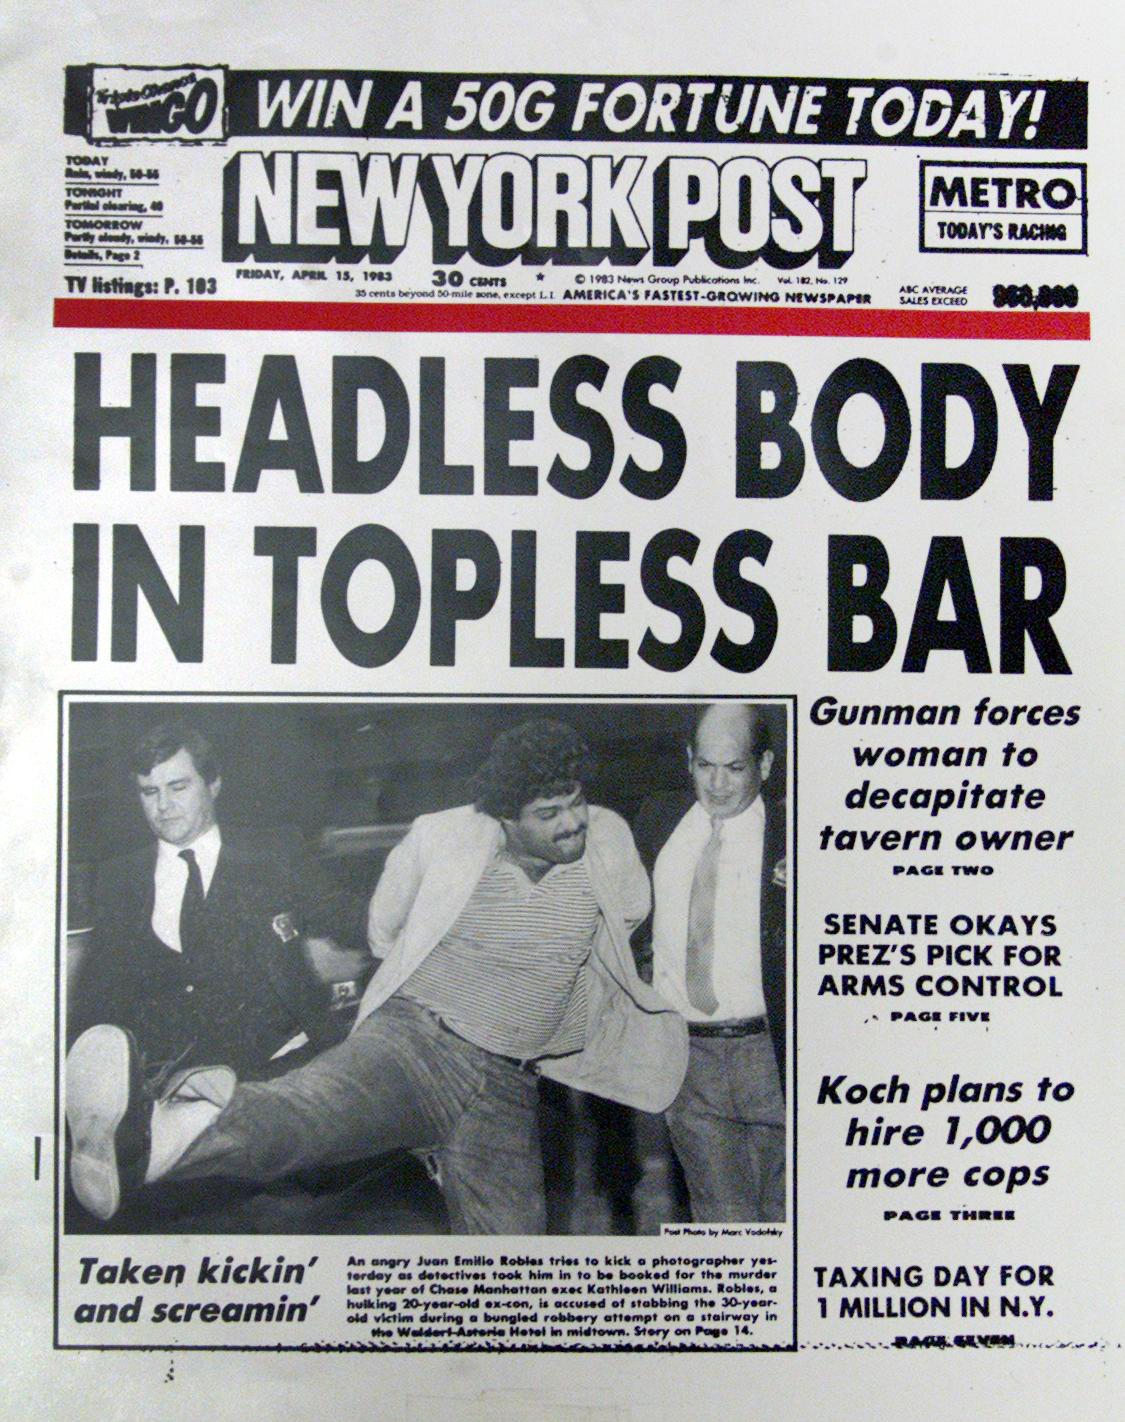 New York Post front page on April 15, 1983.